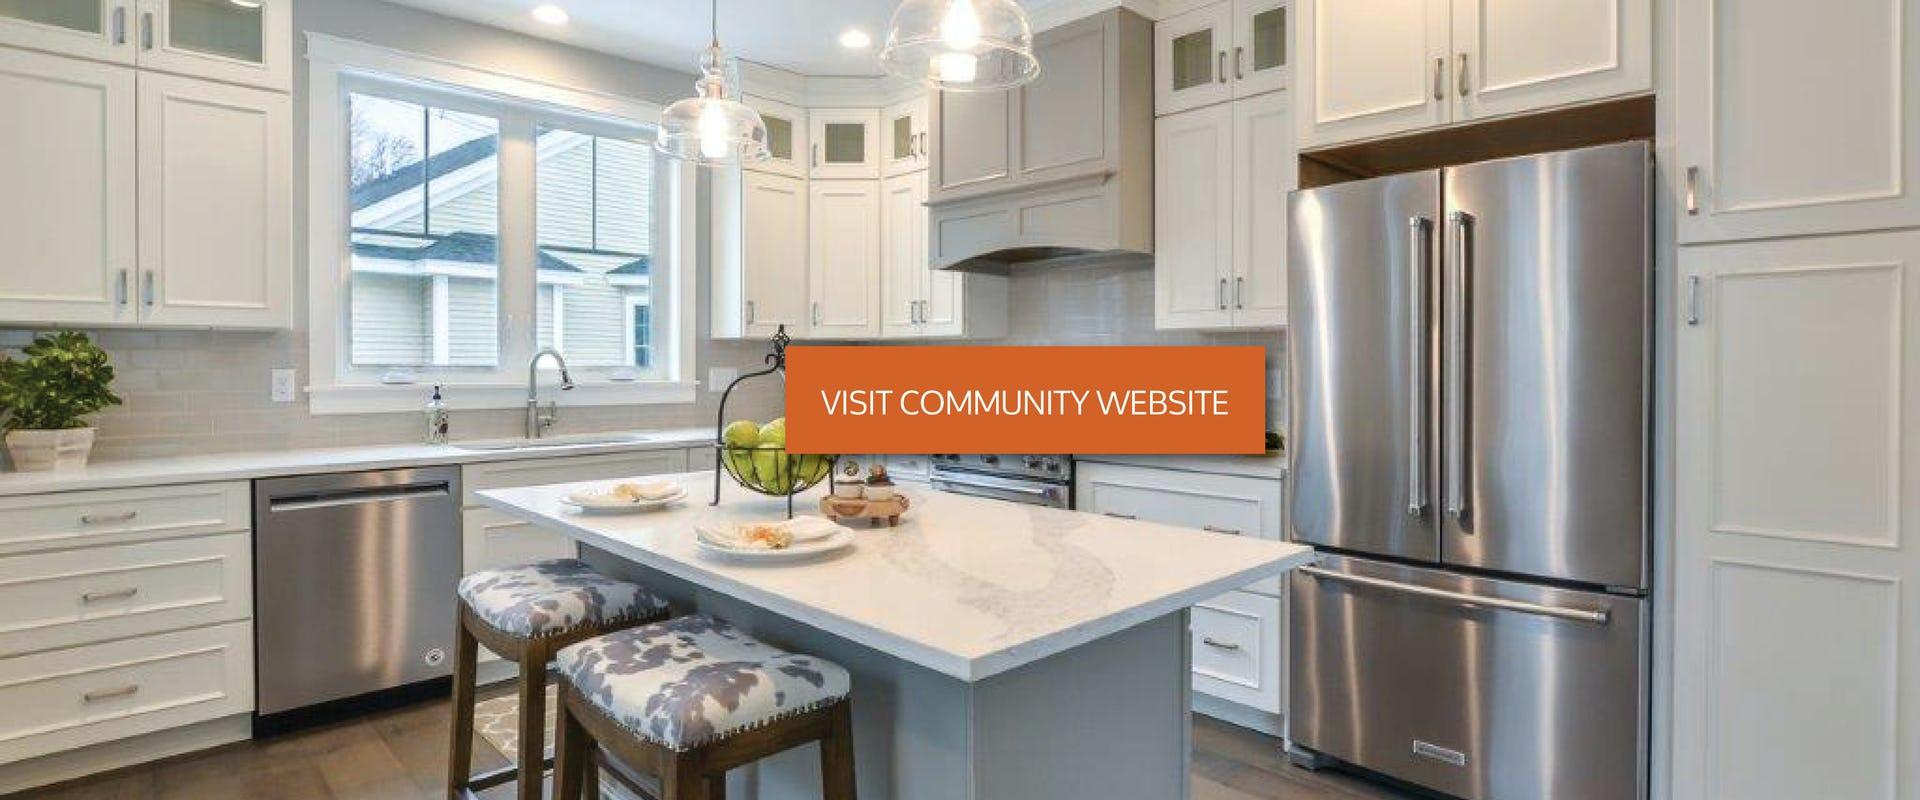 kitchen with visit community website button